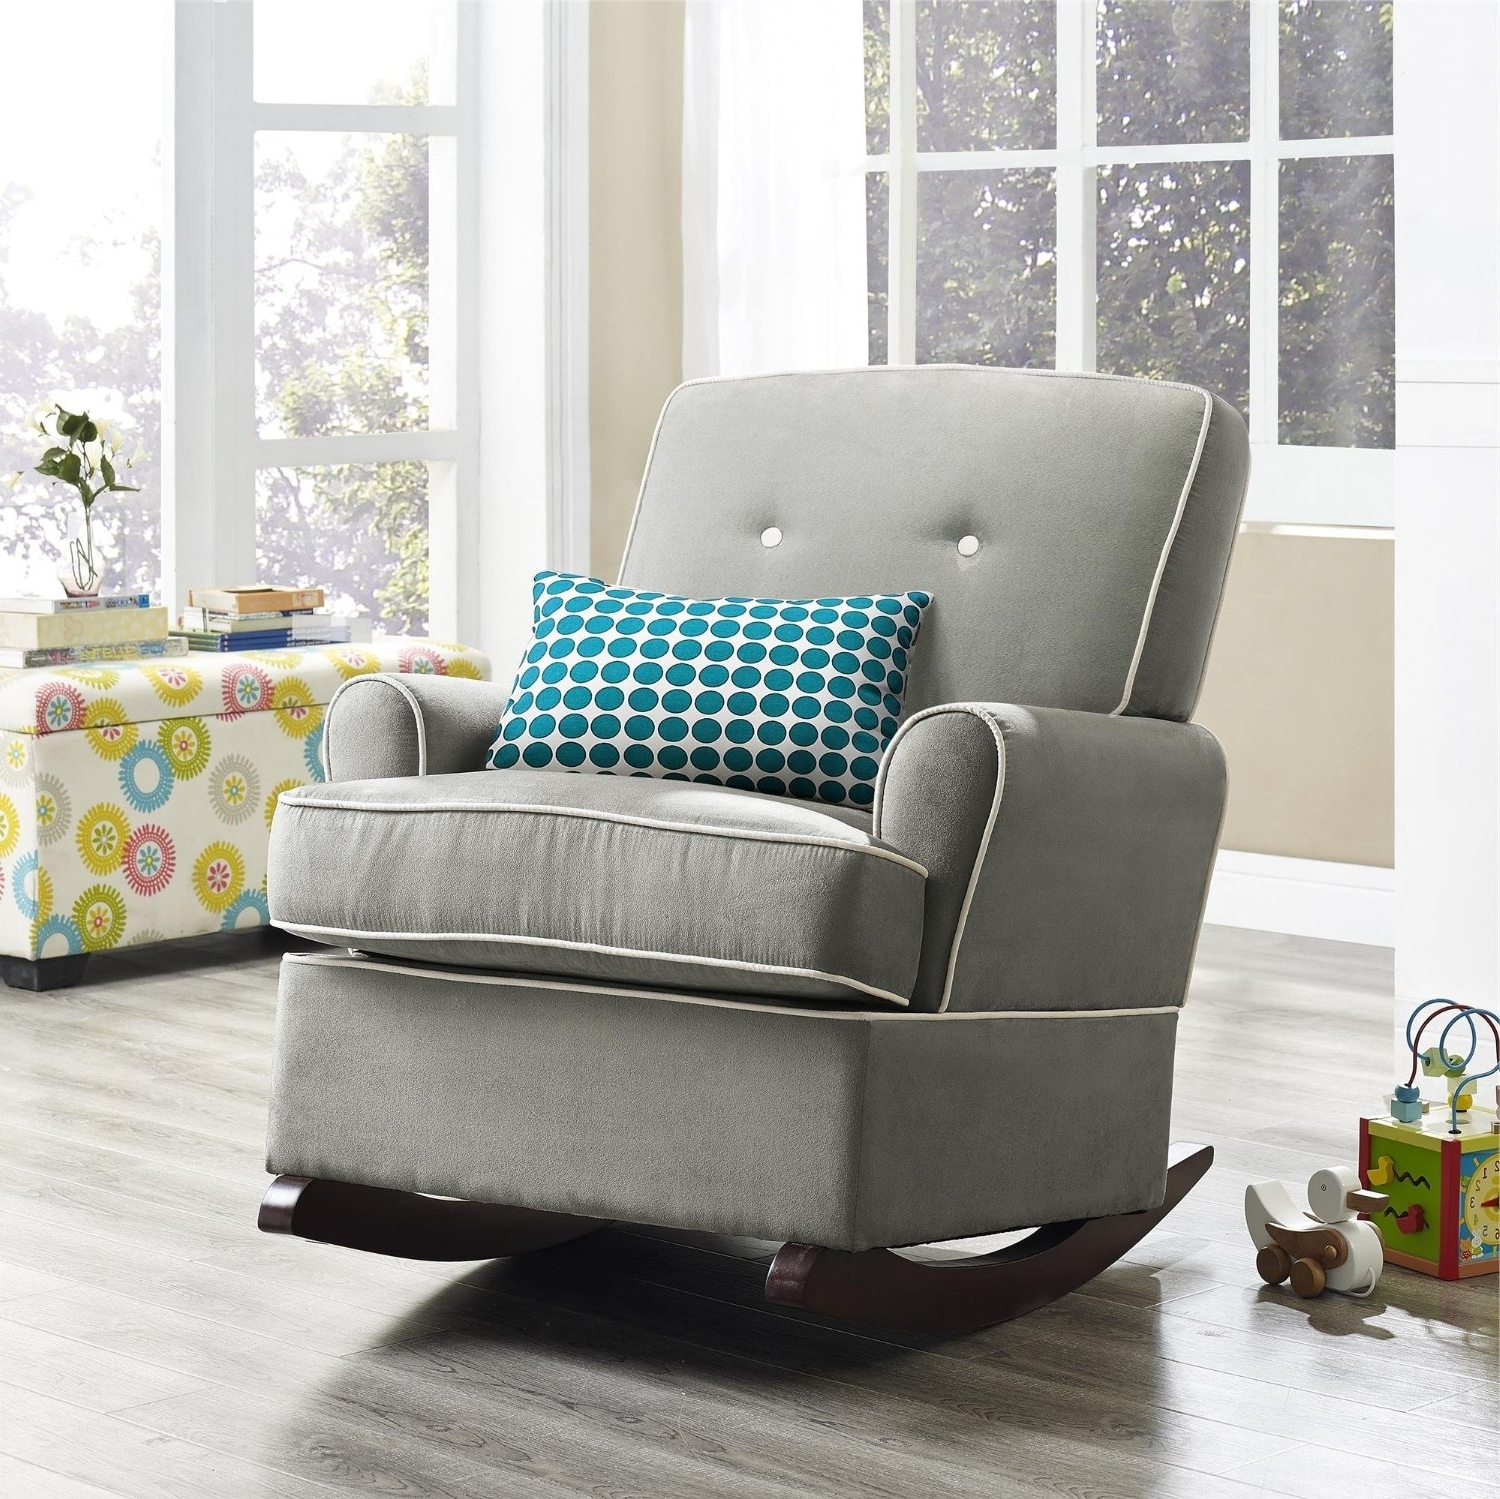 Best Rocking Chairs With Regard To Favorite Rocking Chairs For Adults (View 1 of 20)